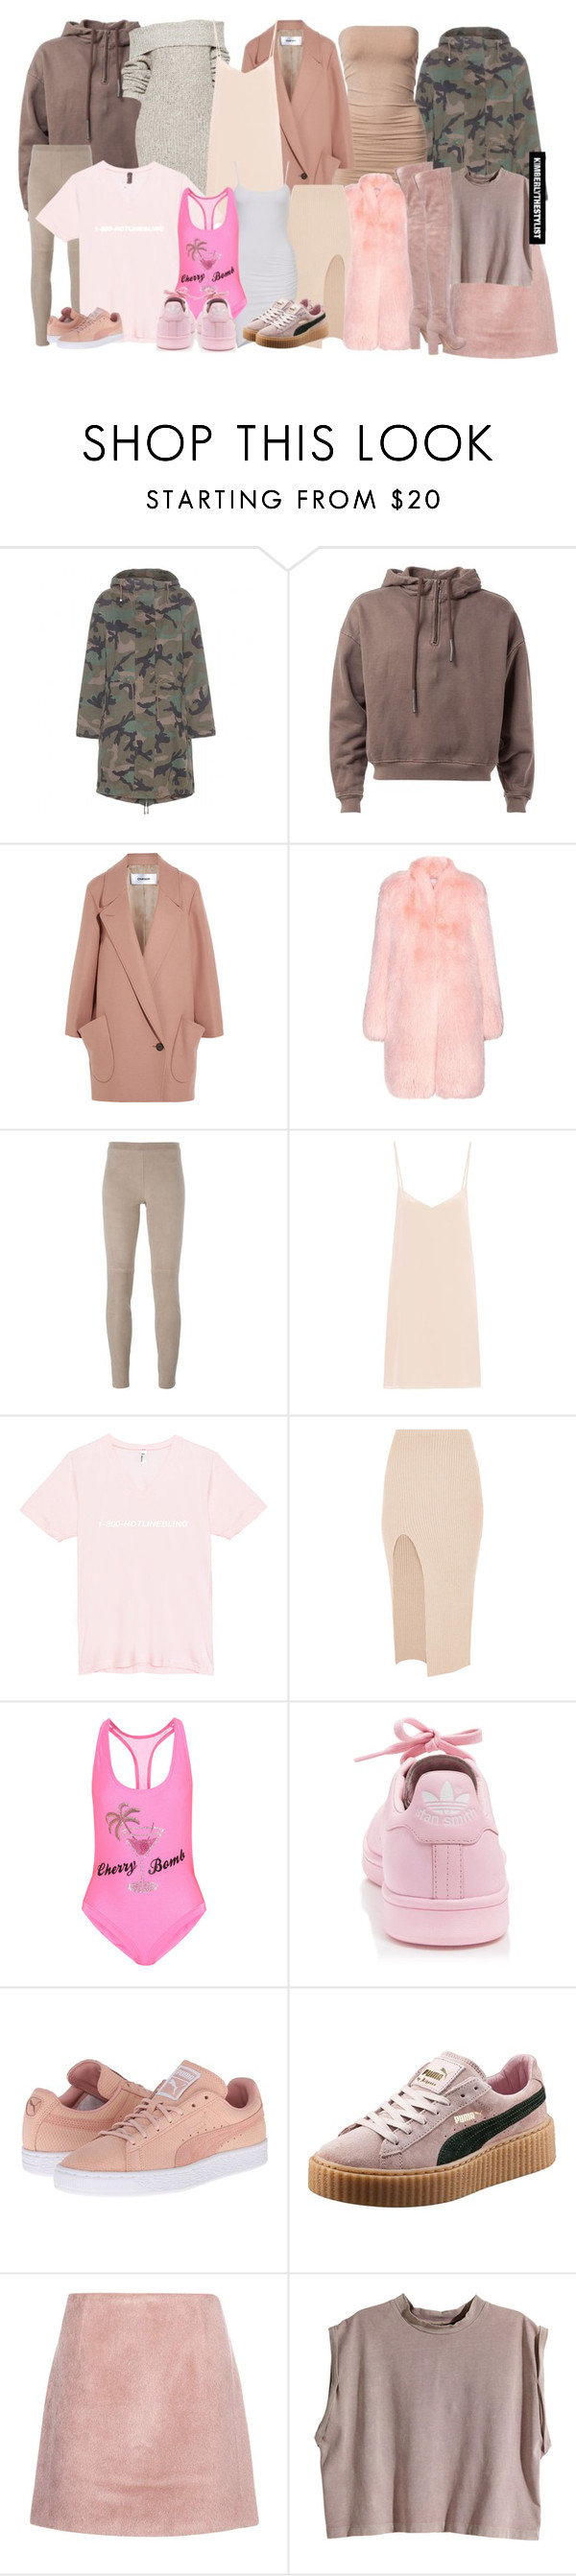 """""""Untitled #2269"""" by whokd ❤ liked on Polyvore featuring Valentino, Chalayan, Altuzarra, Steffen Schraut, Raey, Maurie & Eve, Filles à papa, adidas, Puma and Acne Studios"""